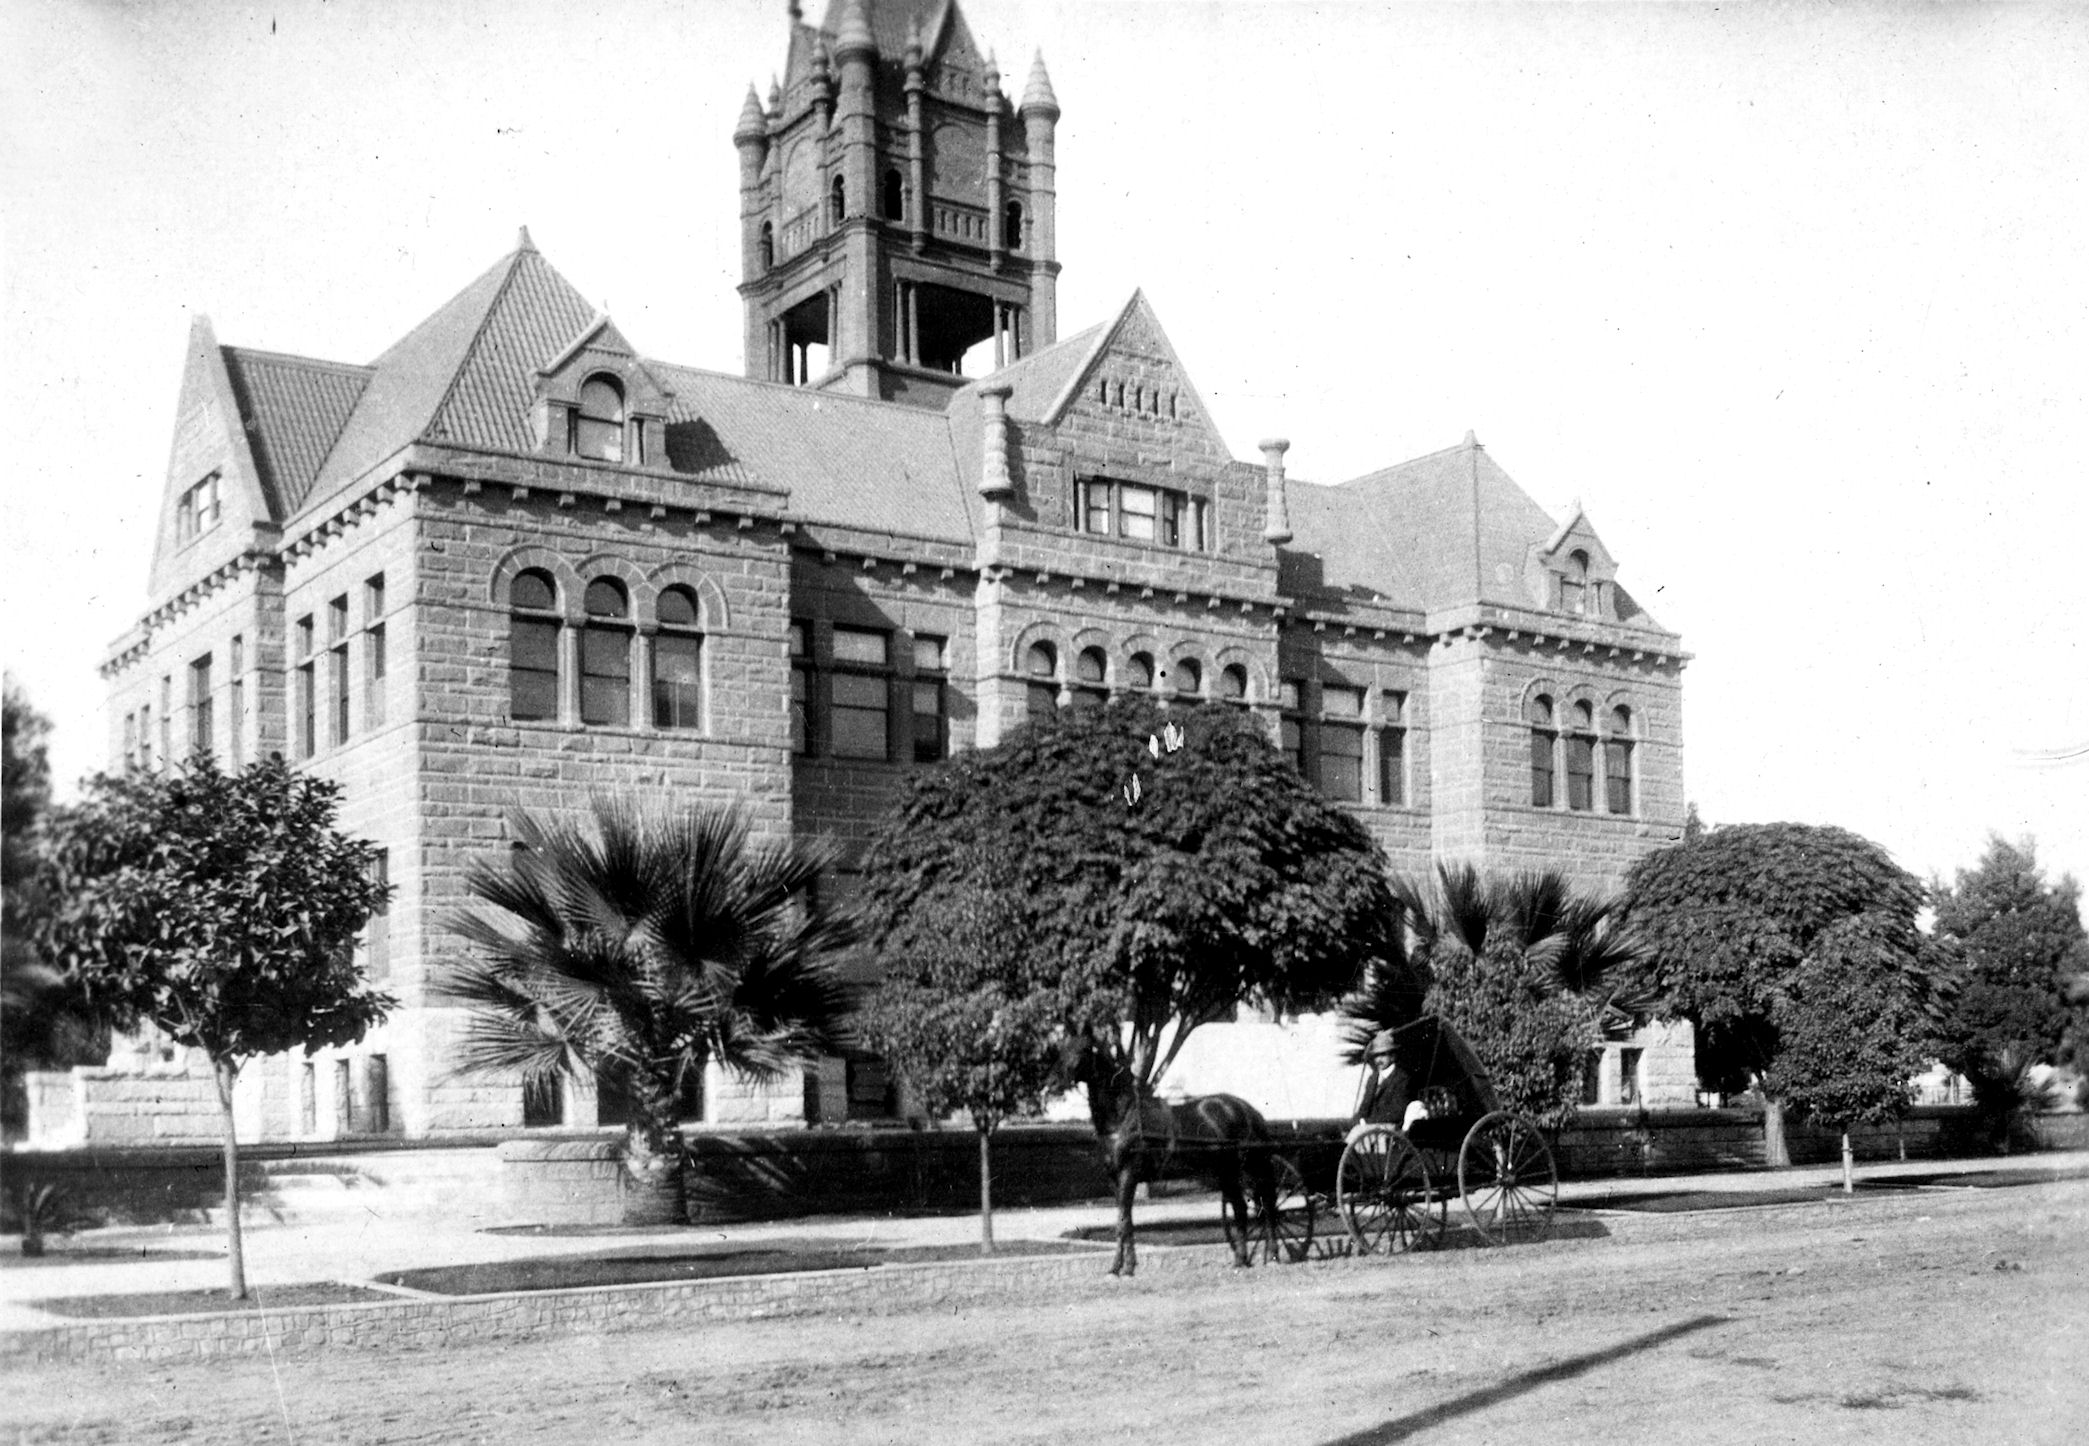 The Old Orange County Courthouse when it was young, 1904 (Phil Brigandi collection).